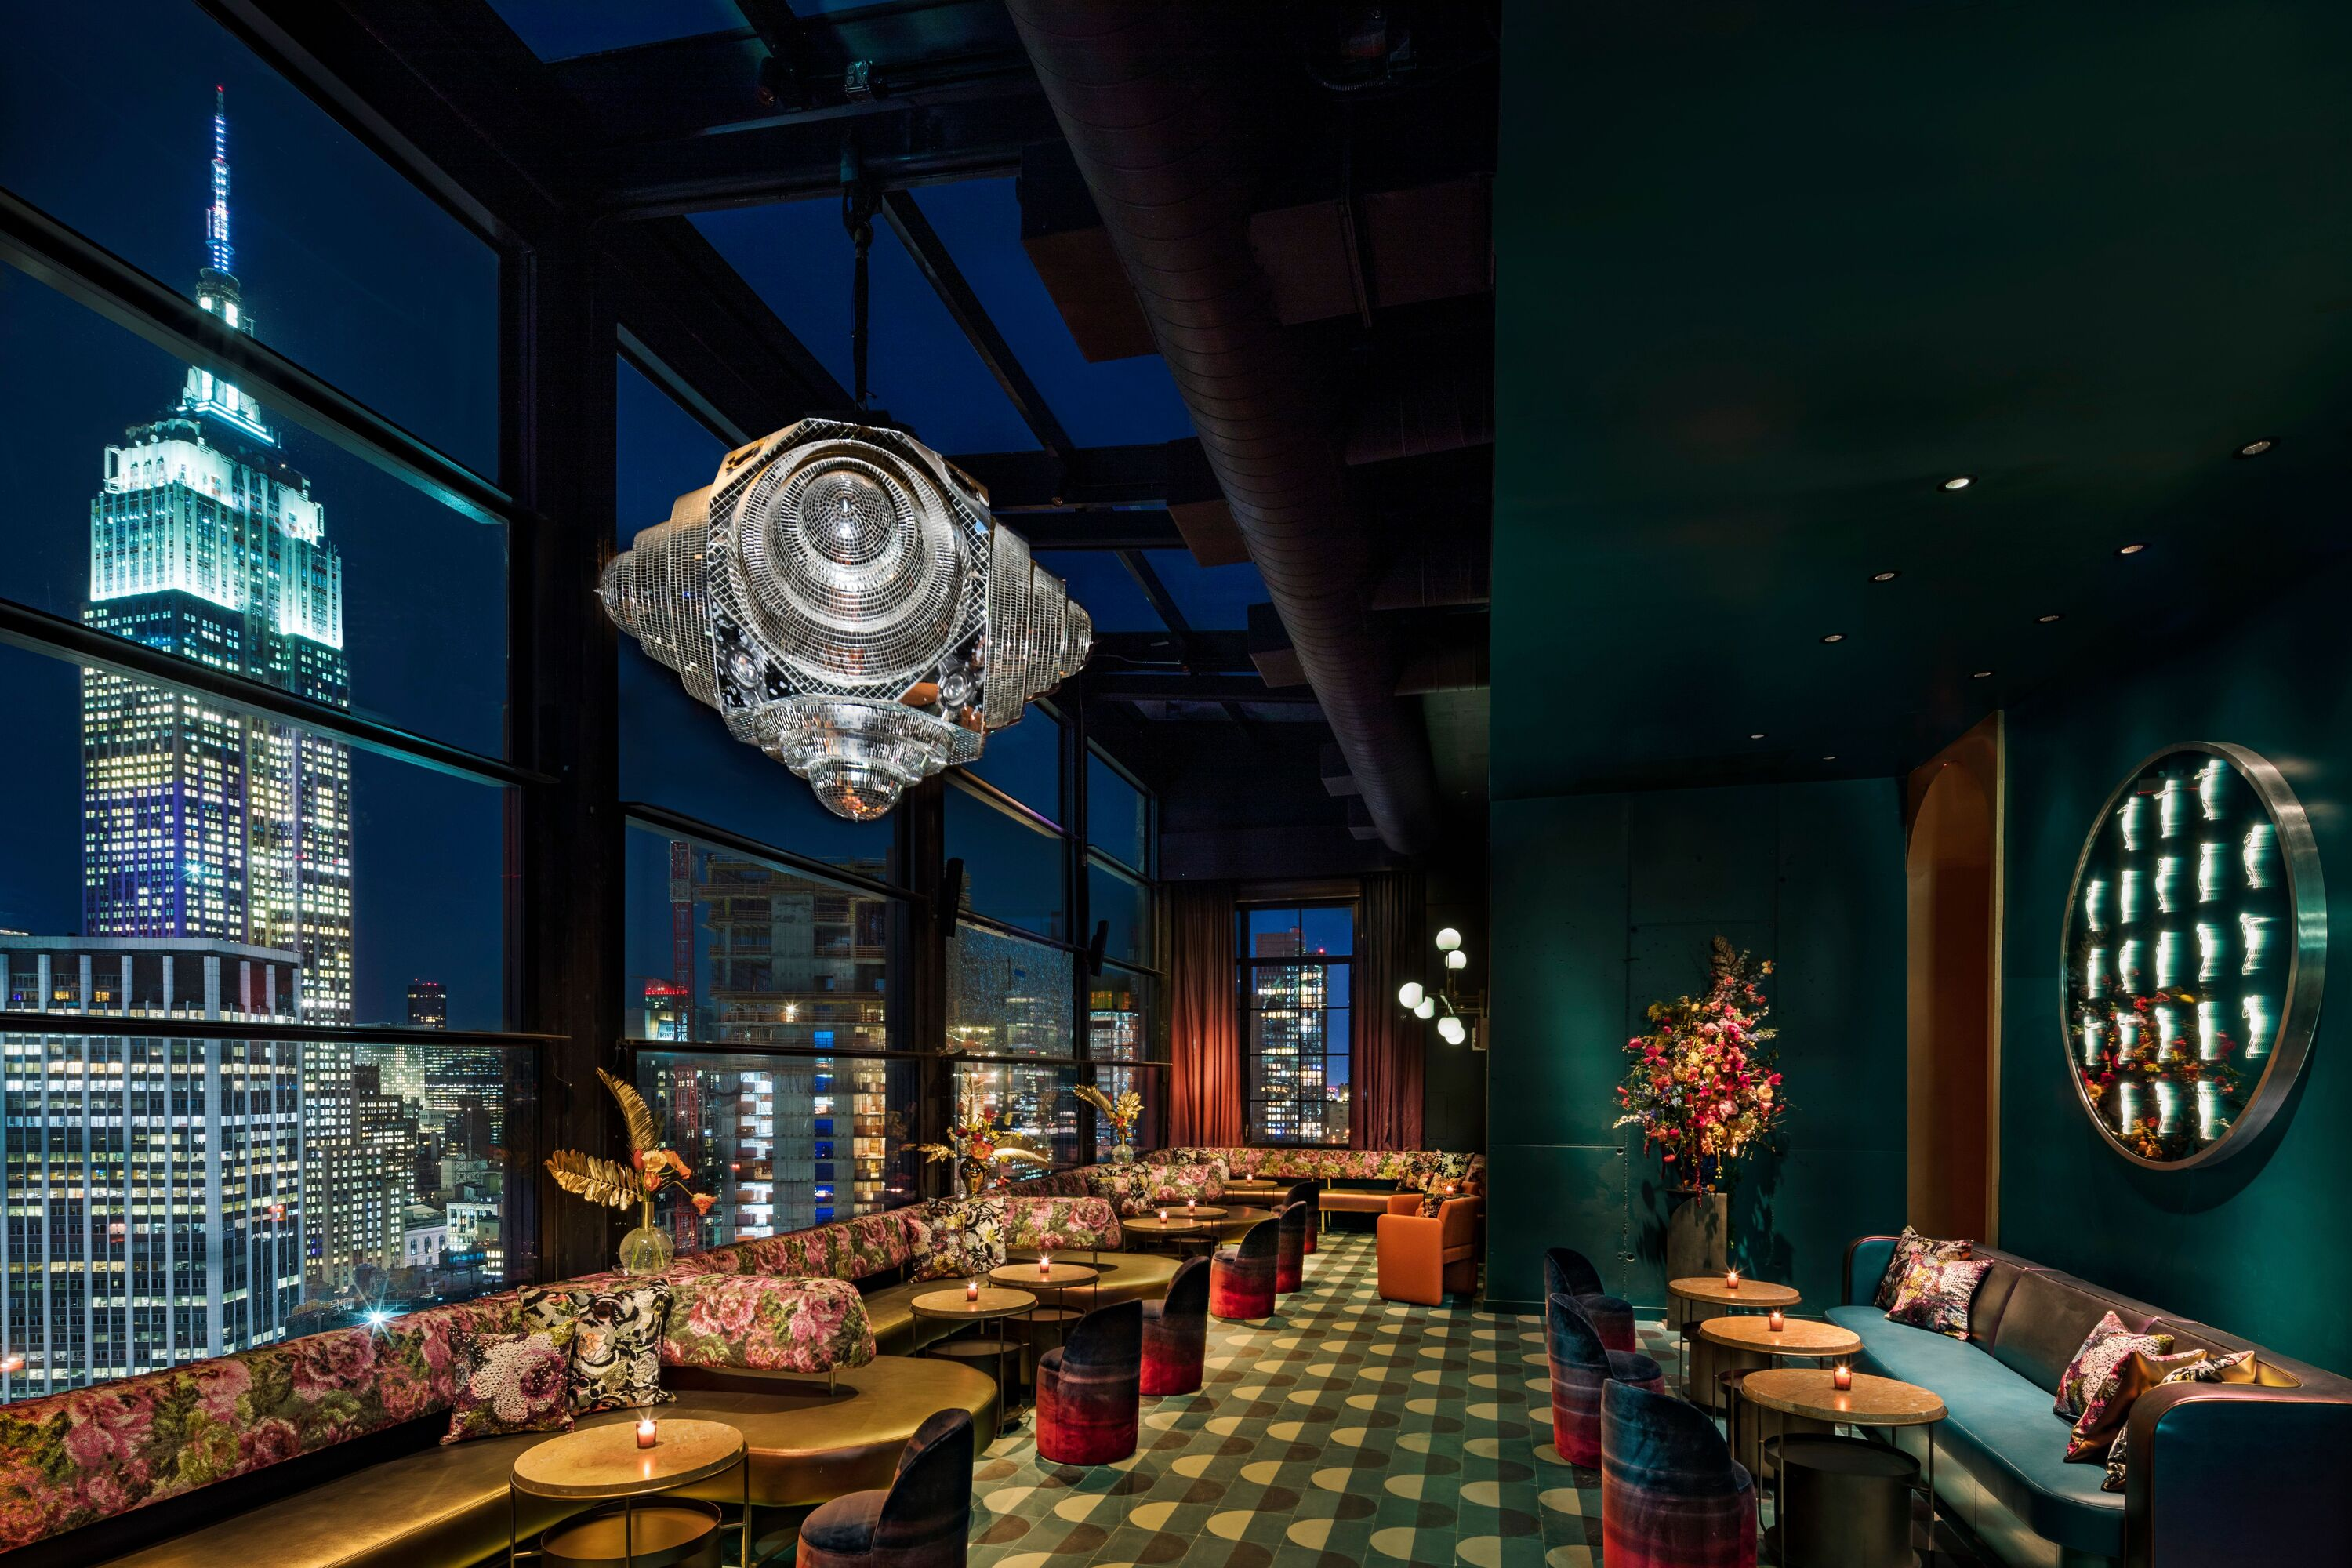 The Fleur Room Bar At Moxy Chelsea Is A Botanical Paradise